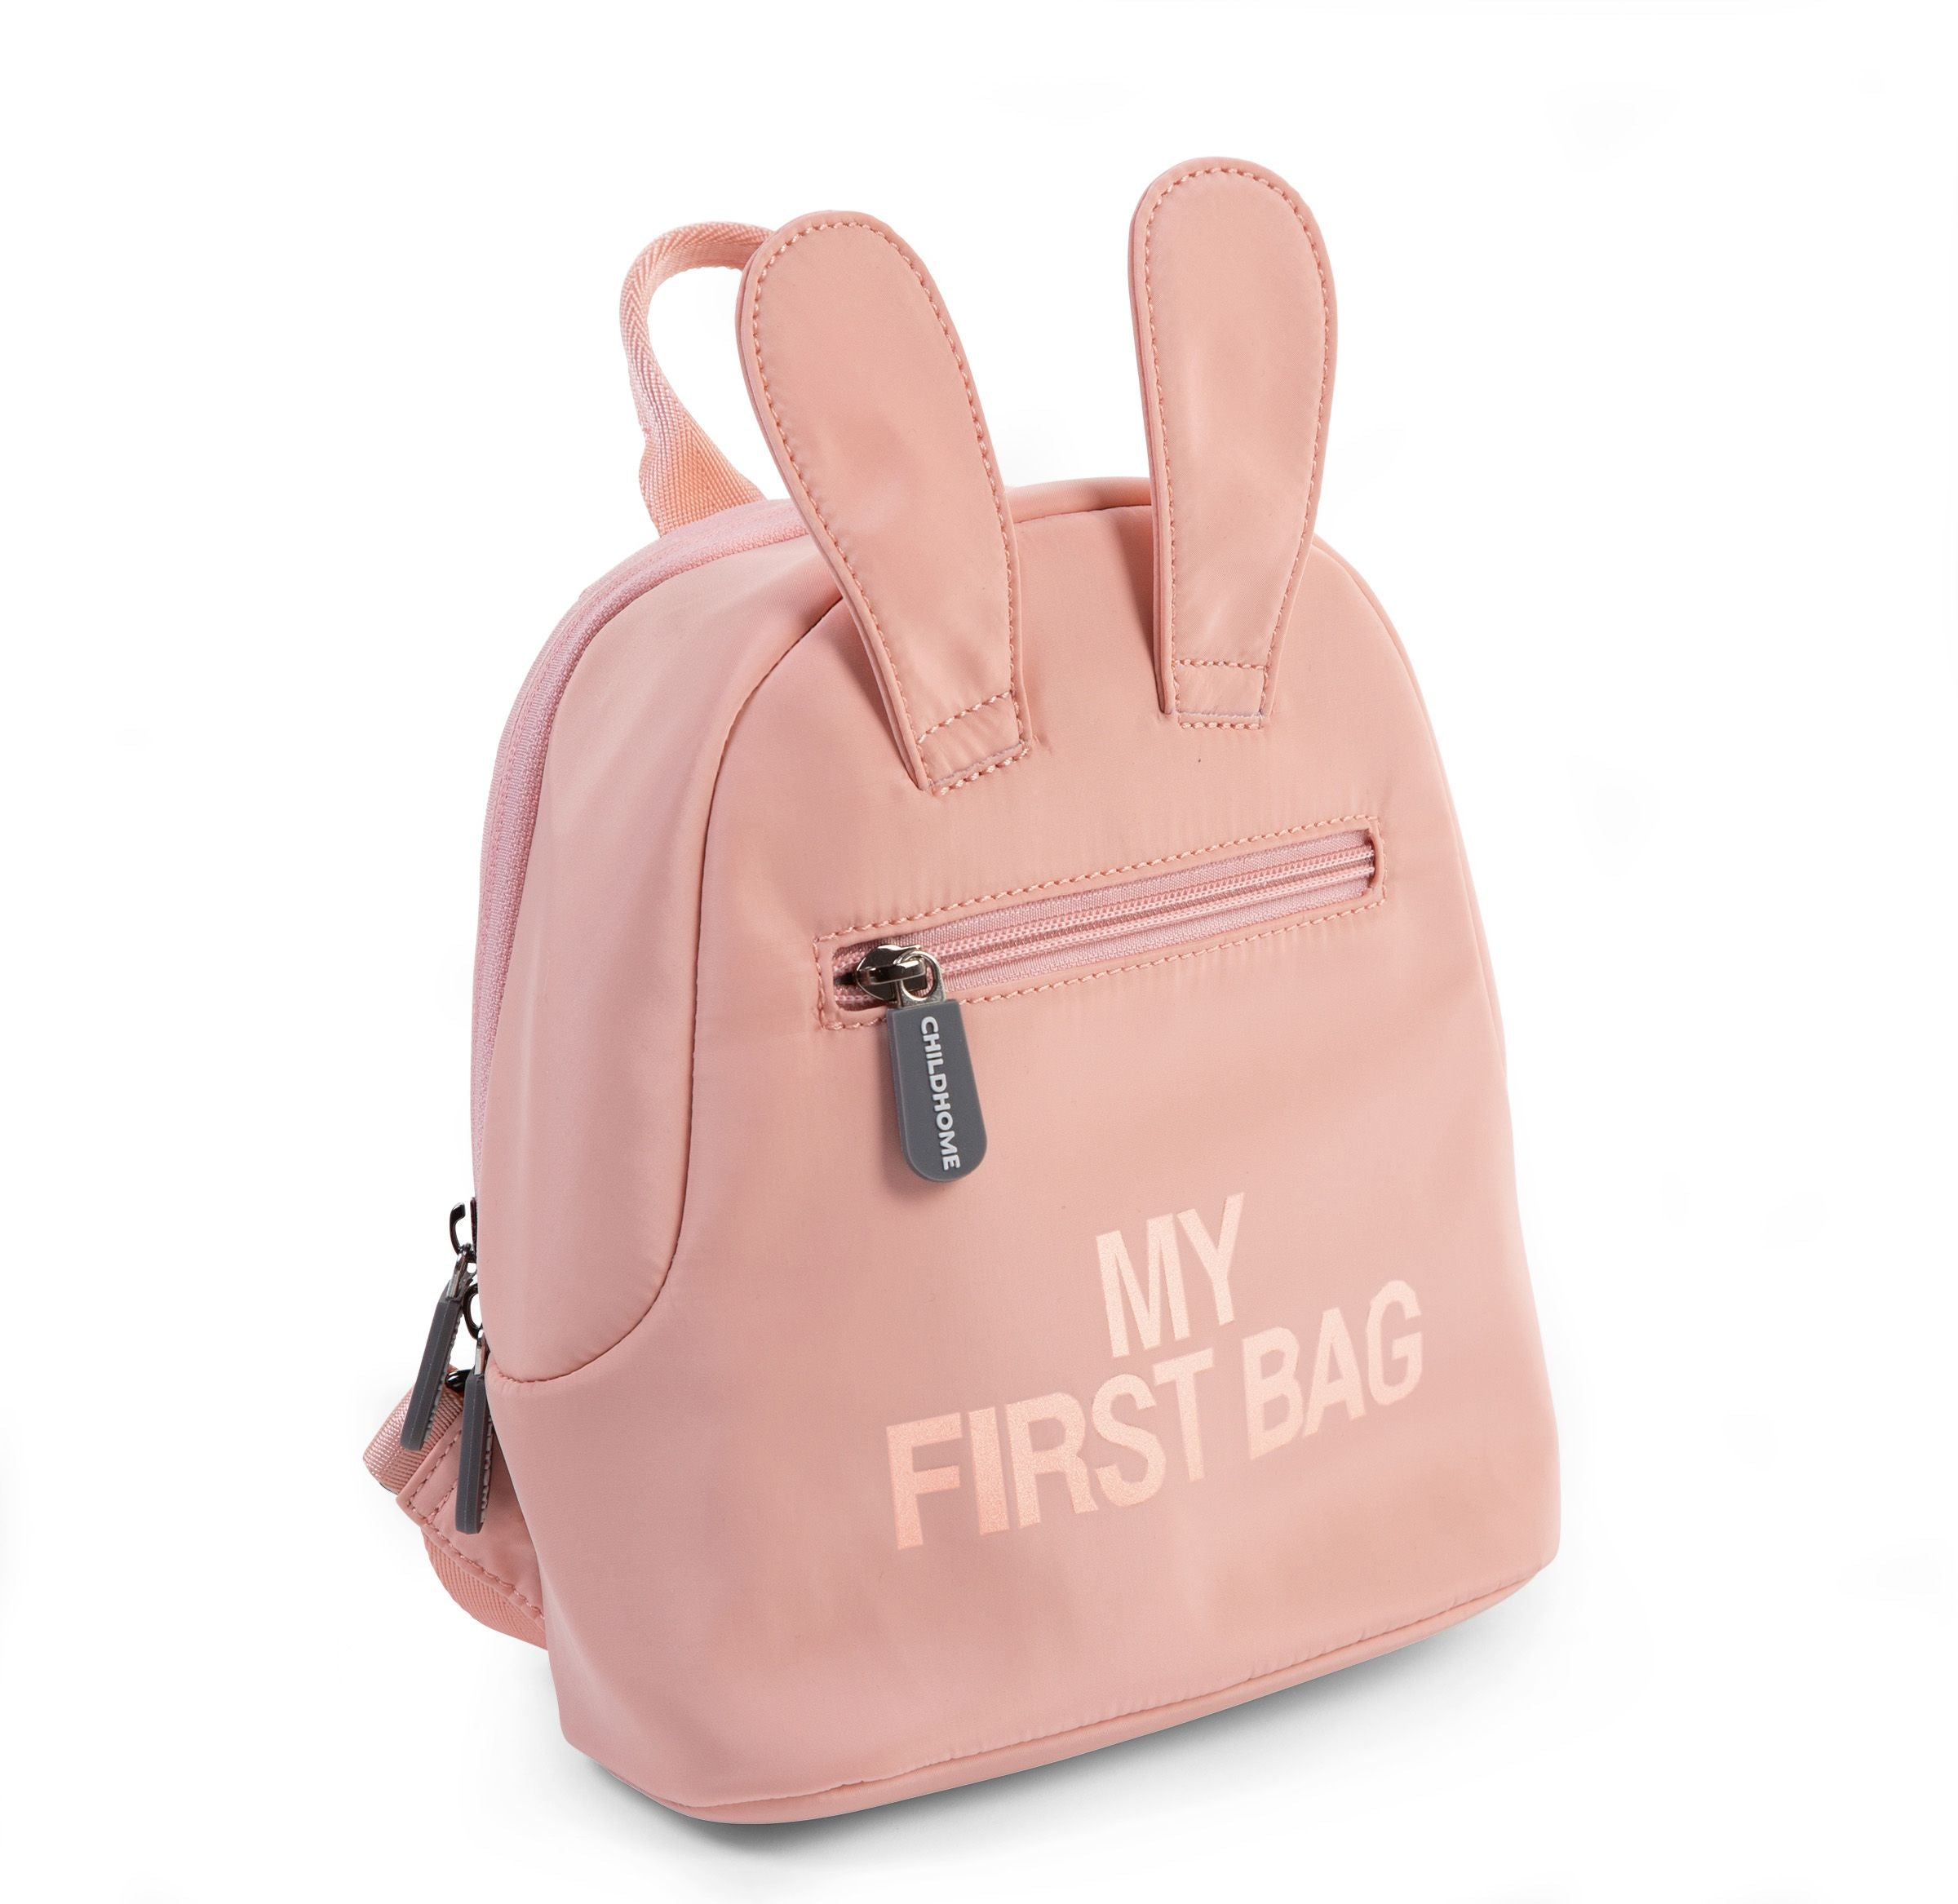 My First Bag Children's Backpack - Pink - MyLullaby